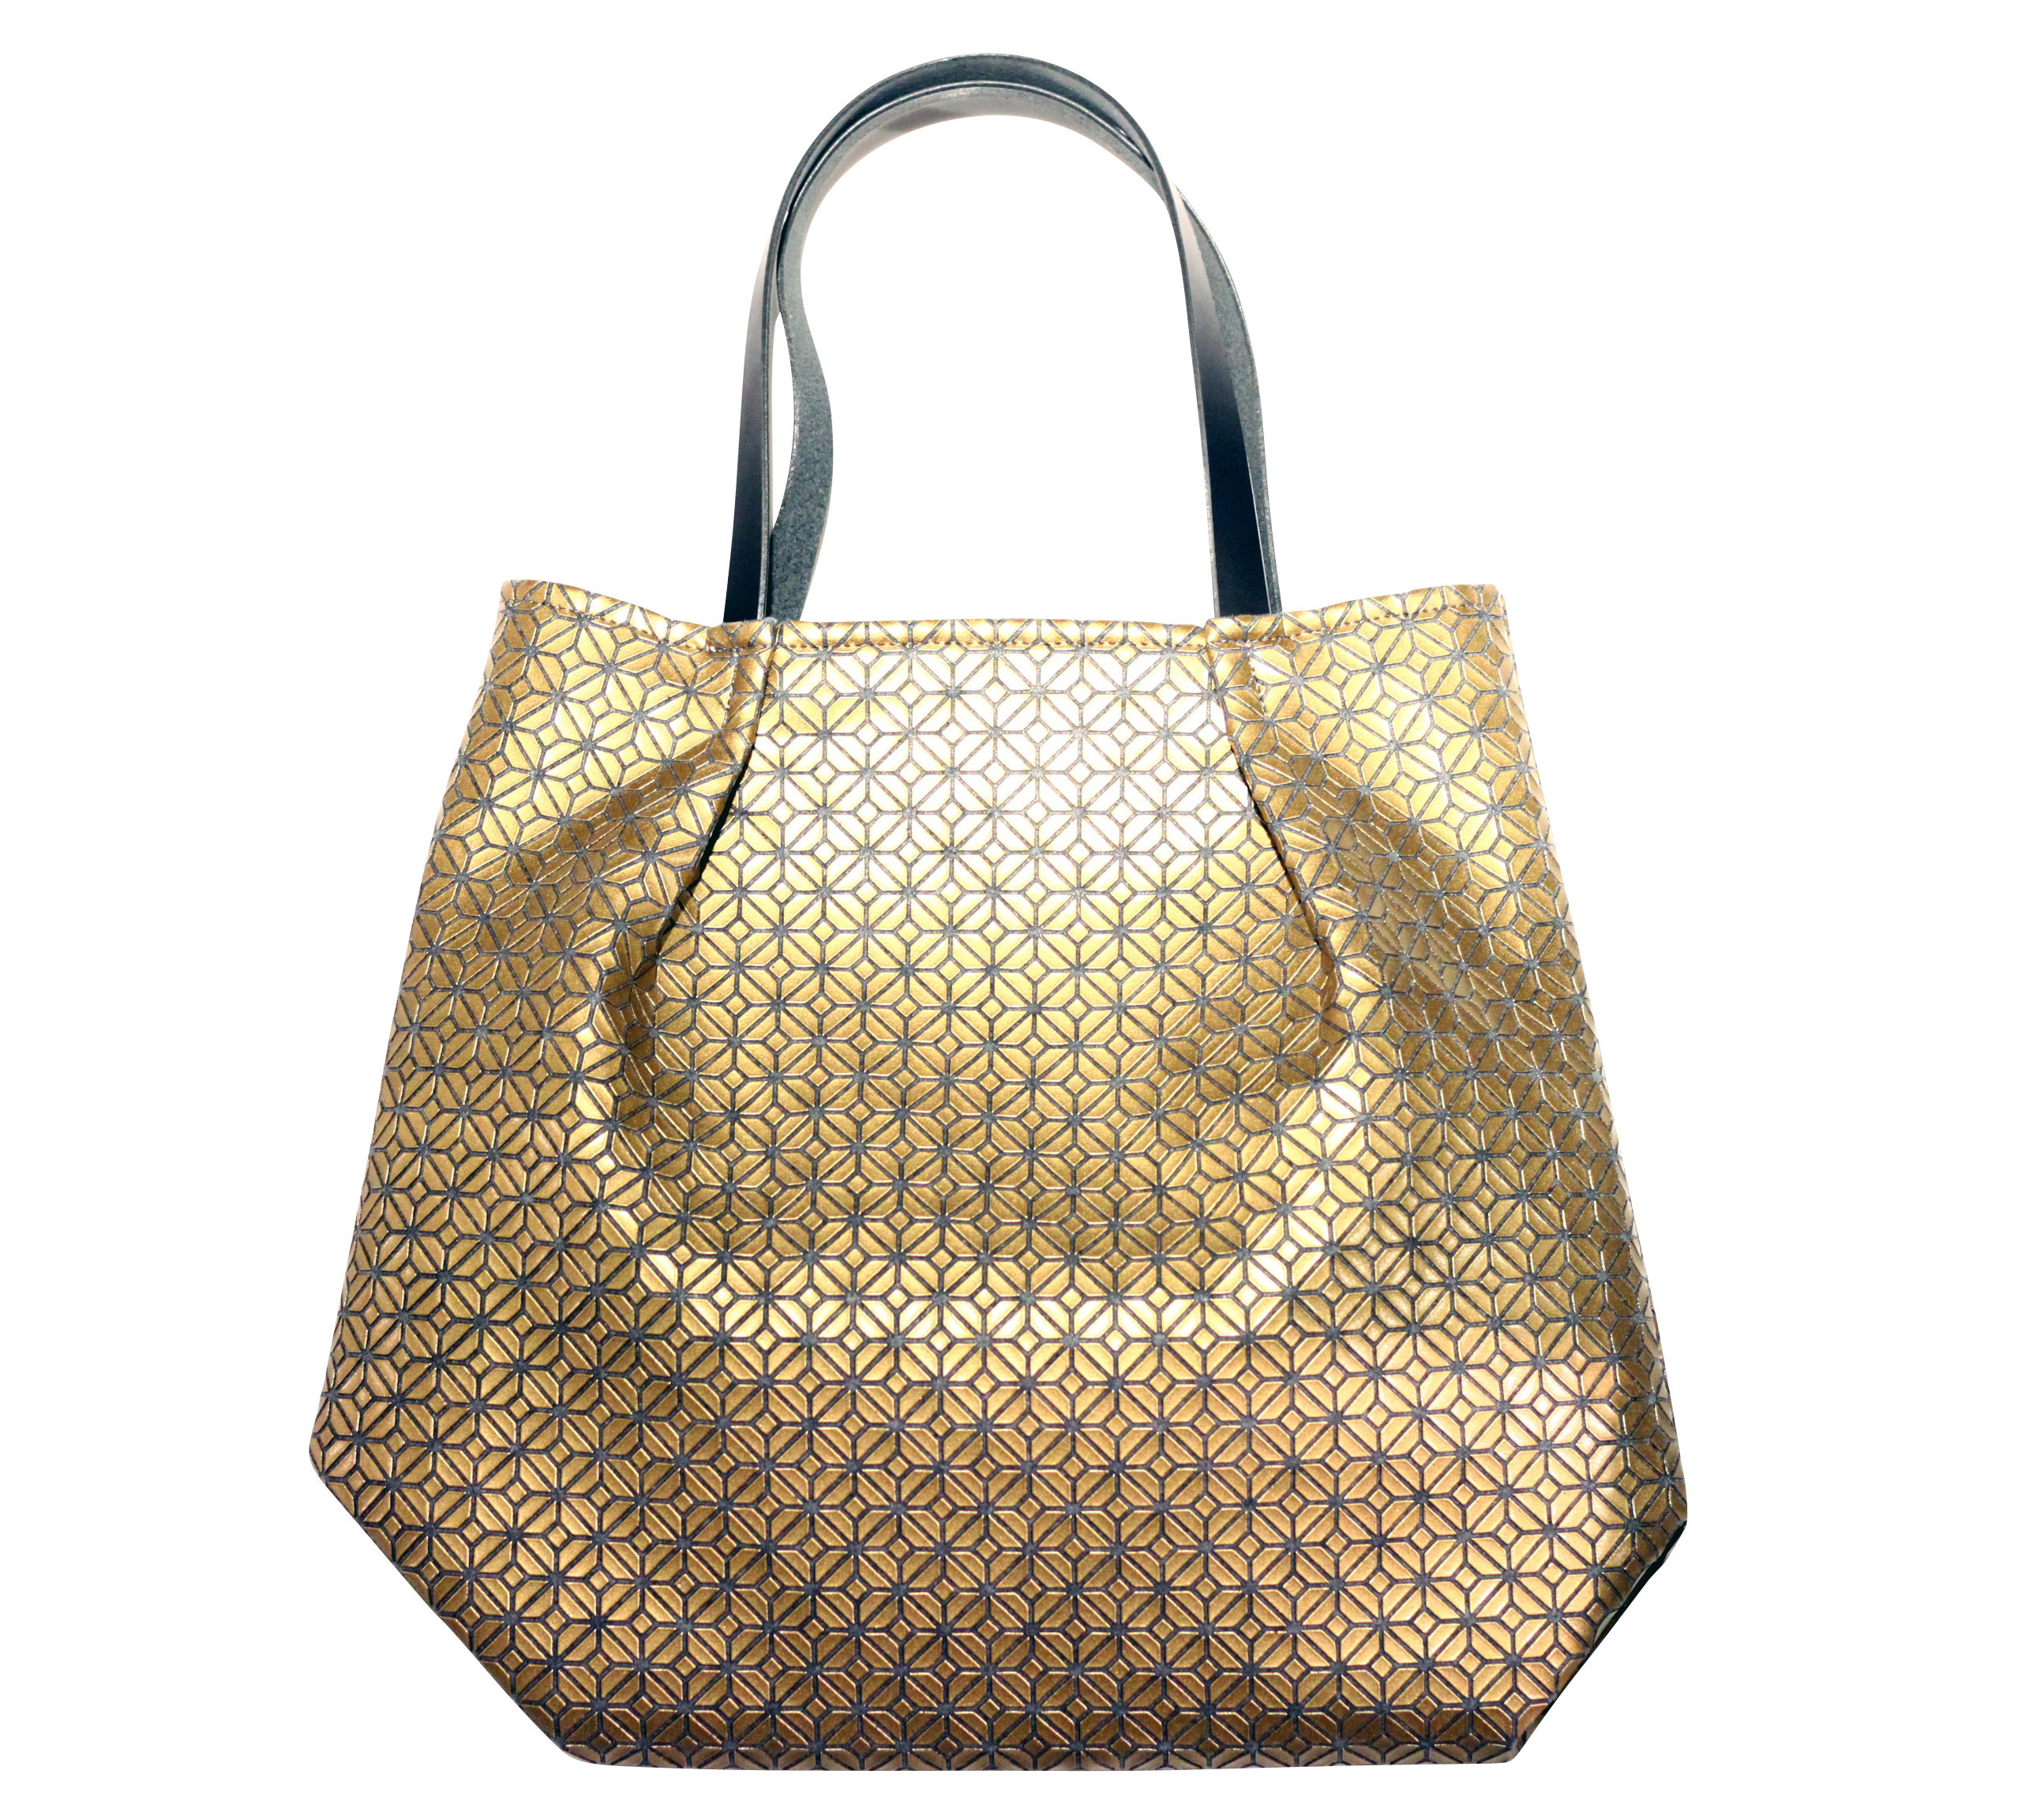 COMMON tote Bag / GOLD GRAY